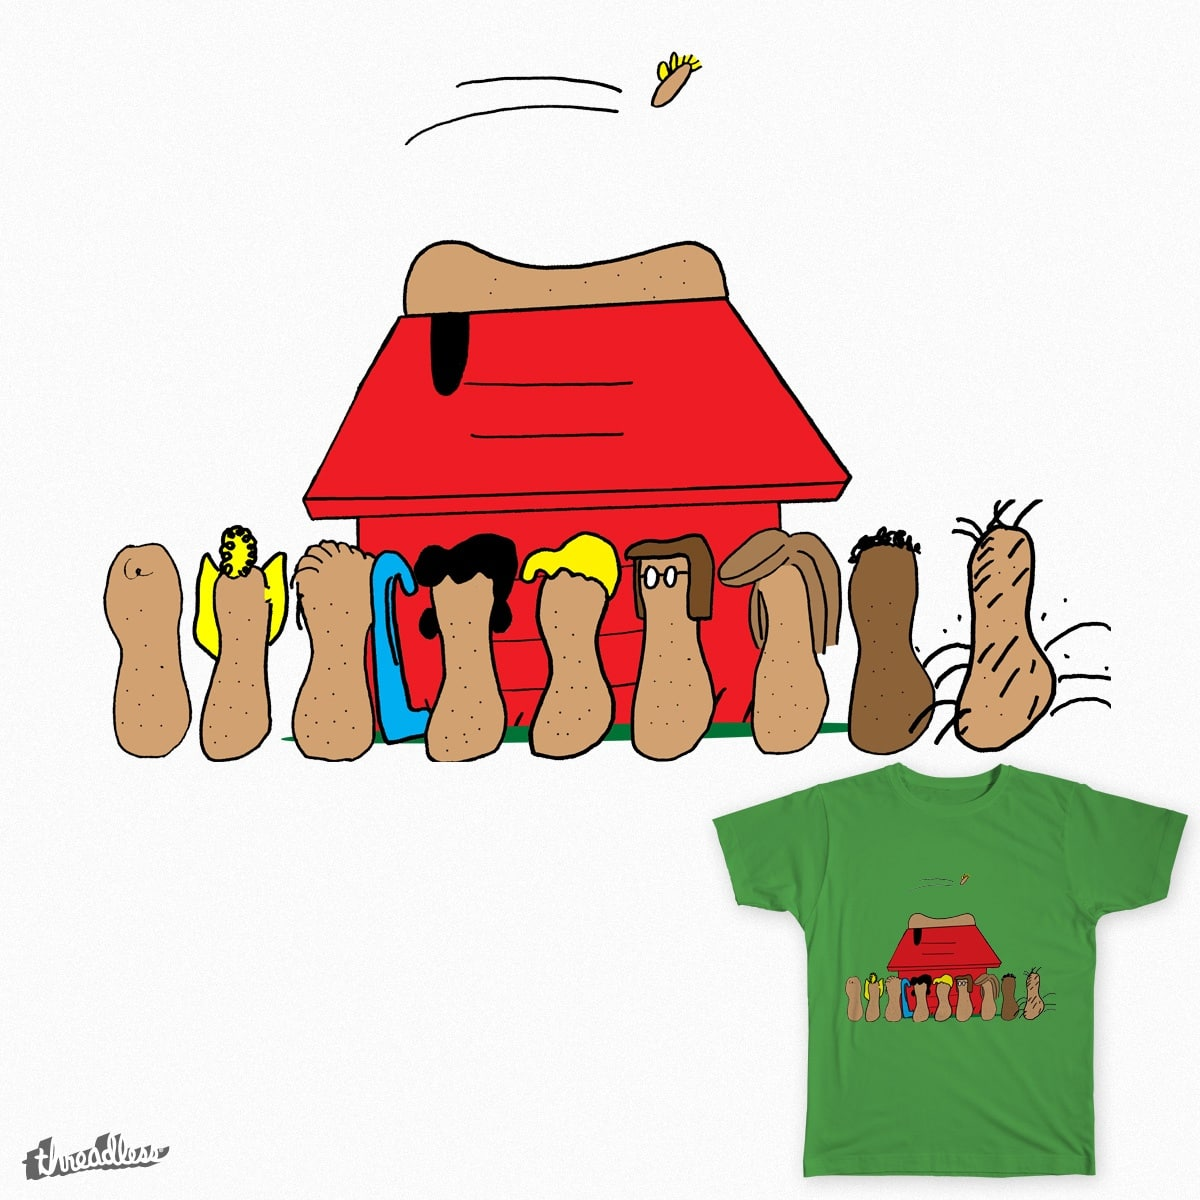 Peanuts by cmschulz on Threadless